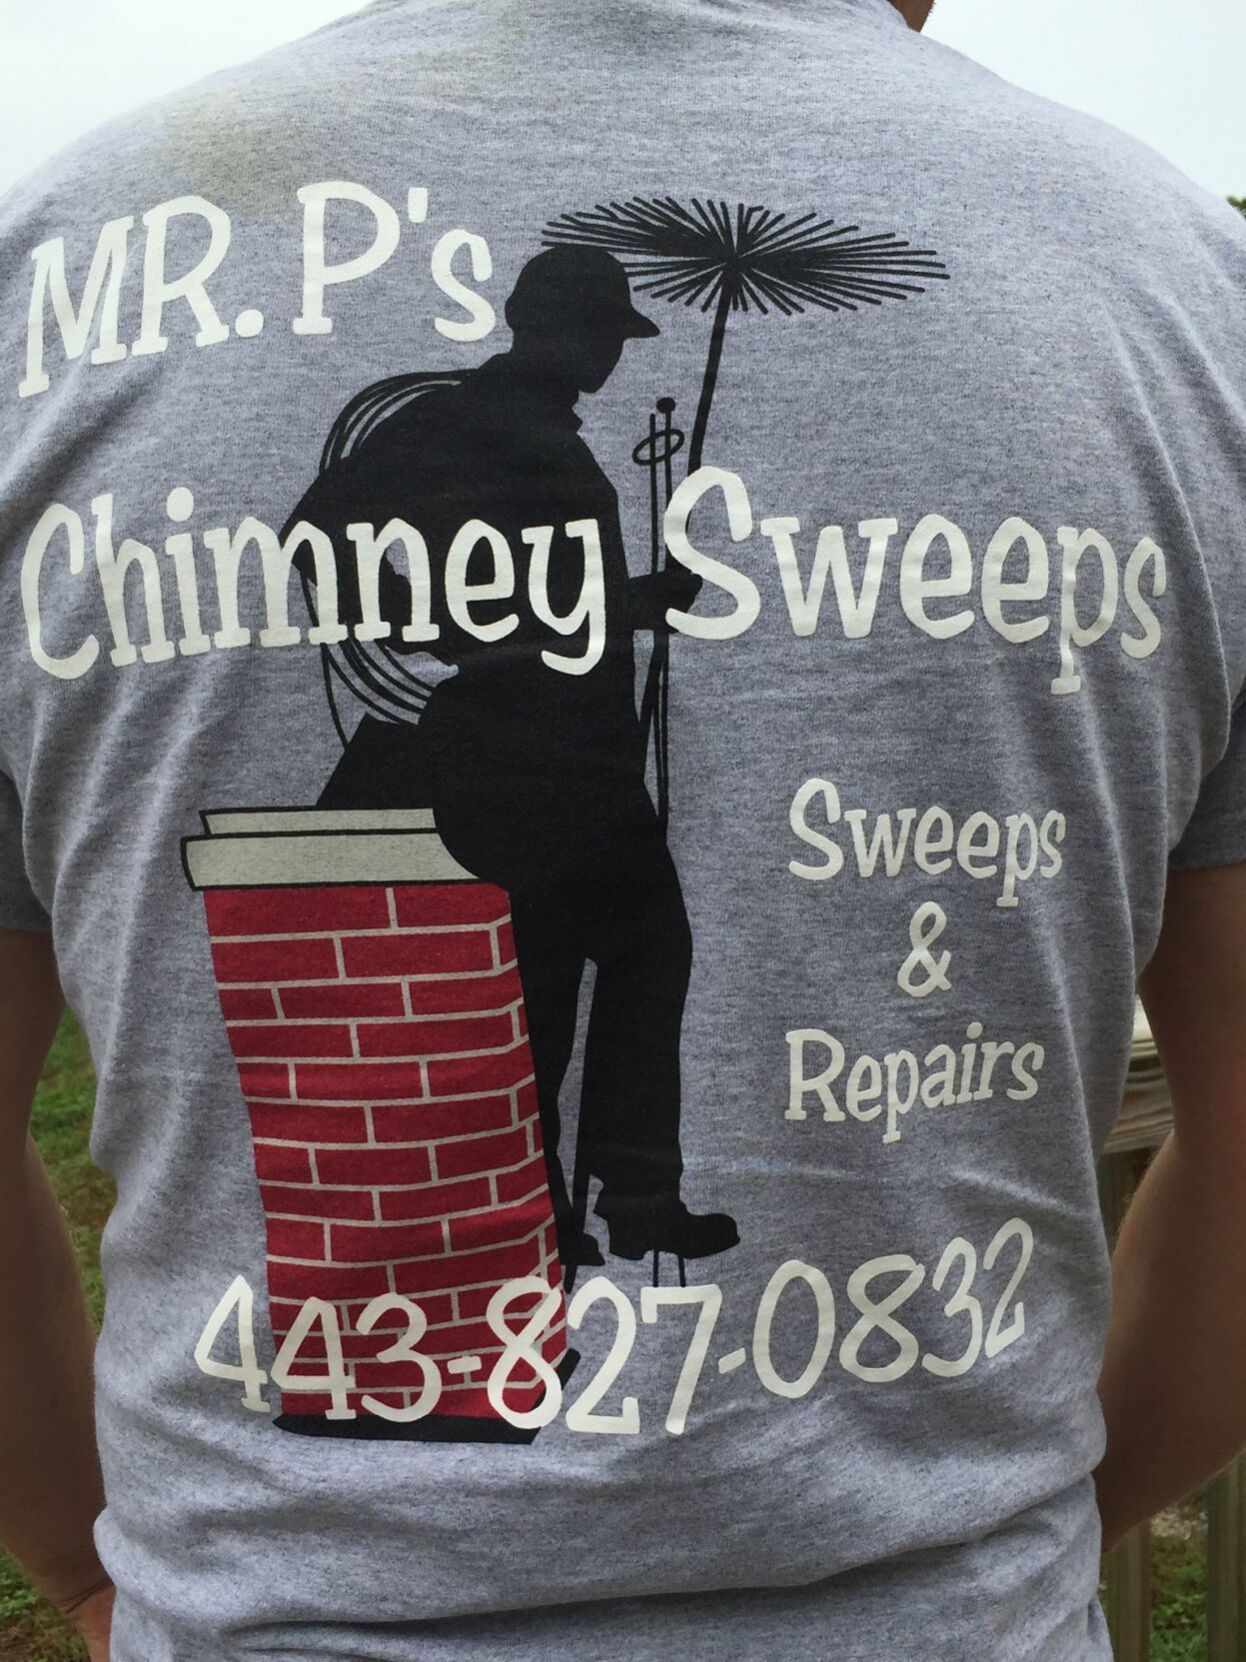 Mr P's Chimney Sweeps and Repairs